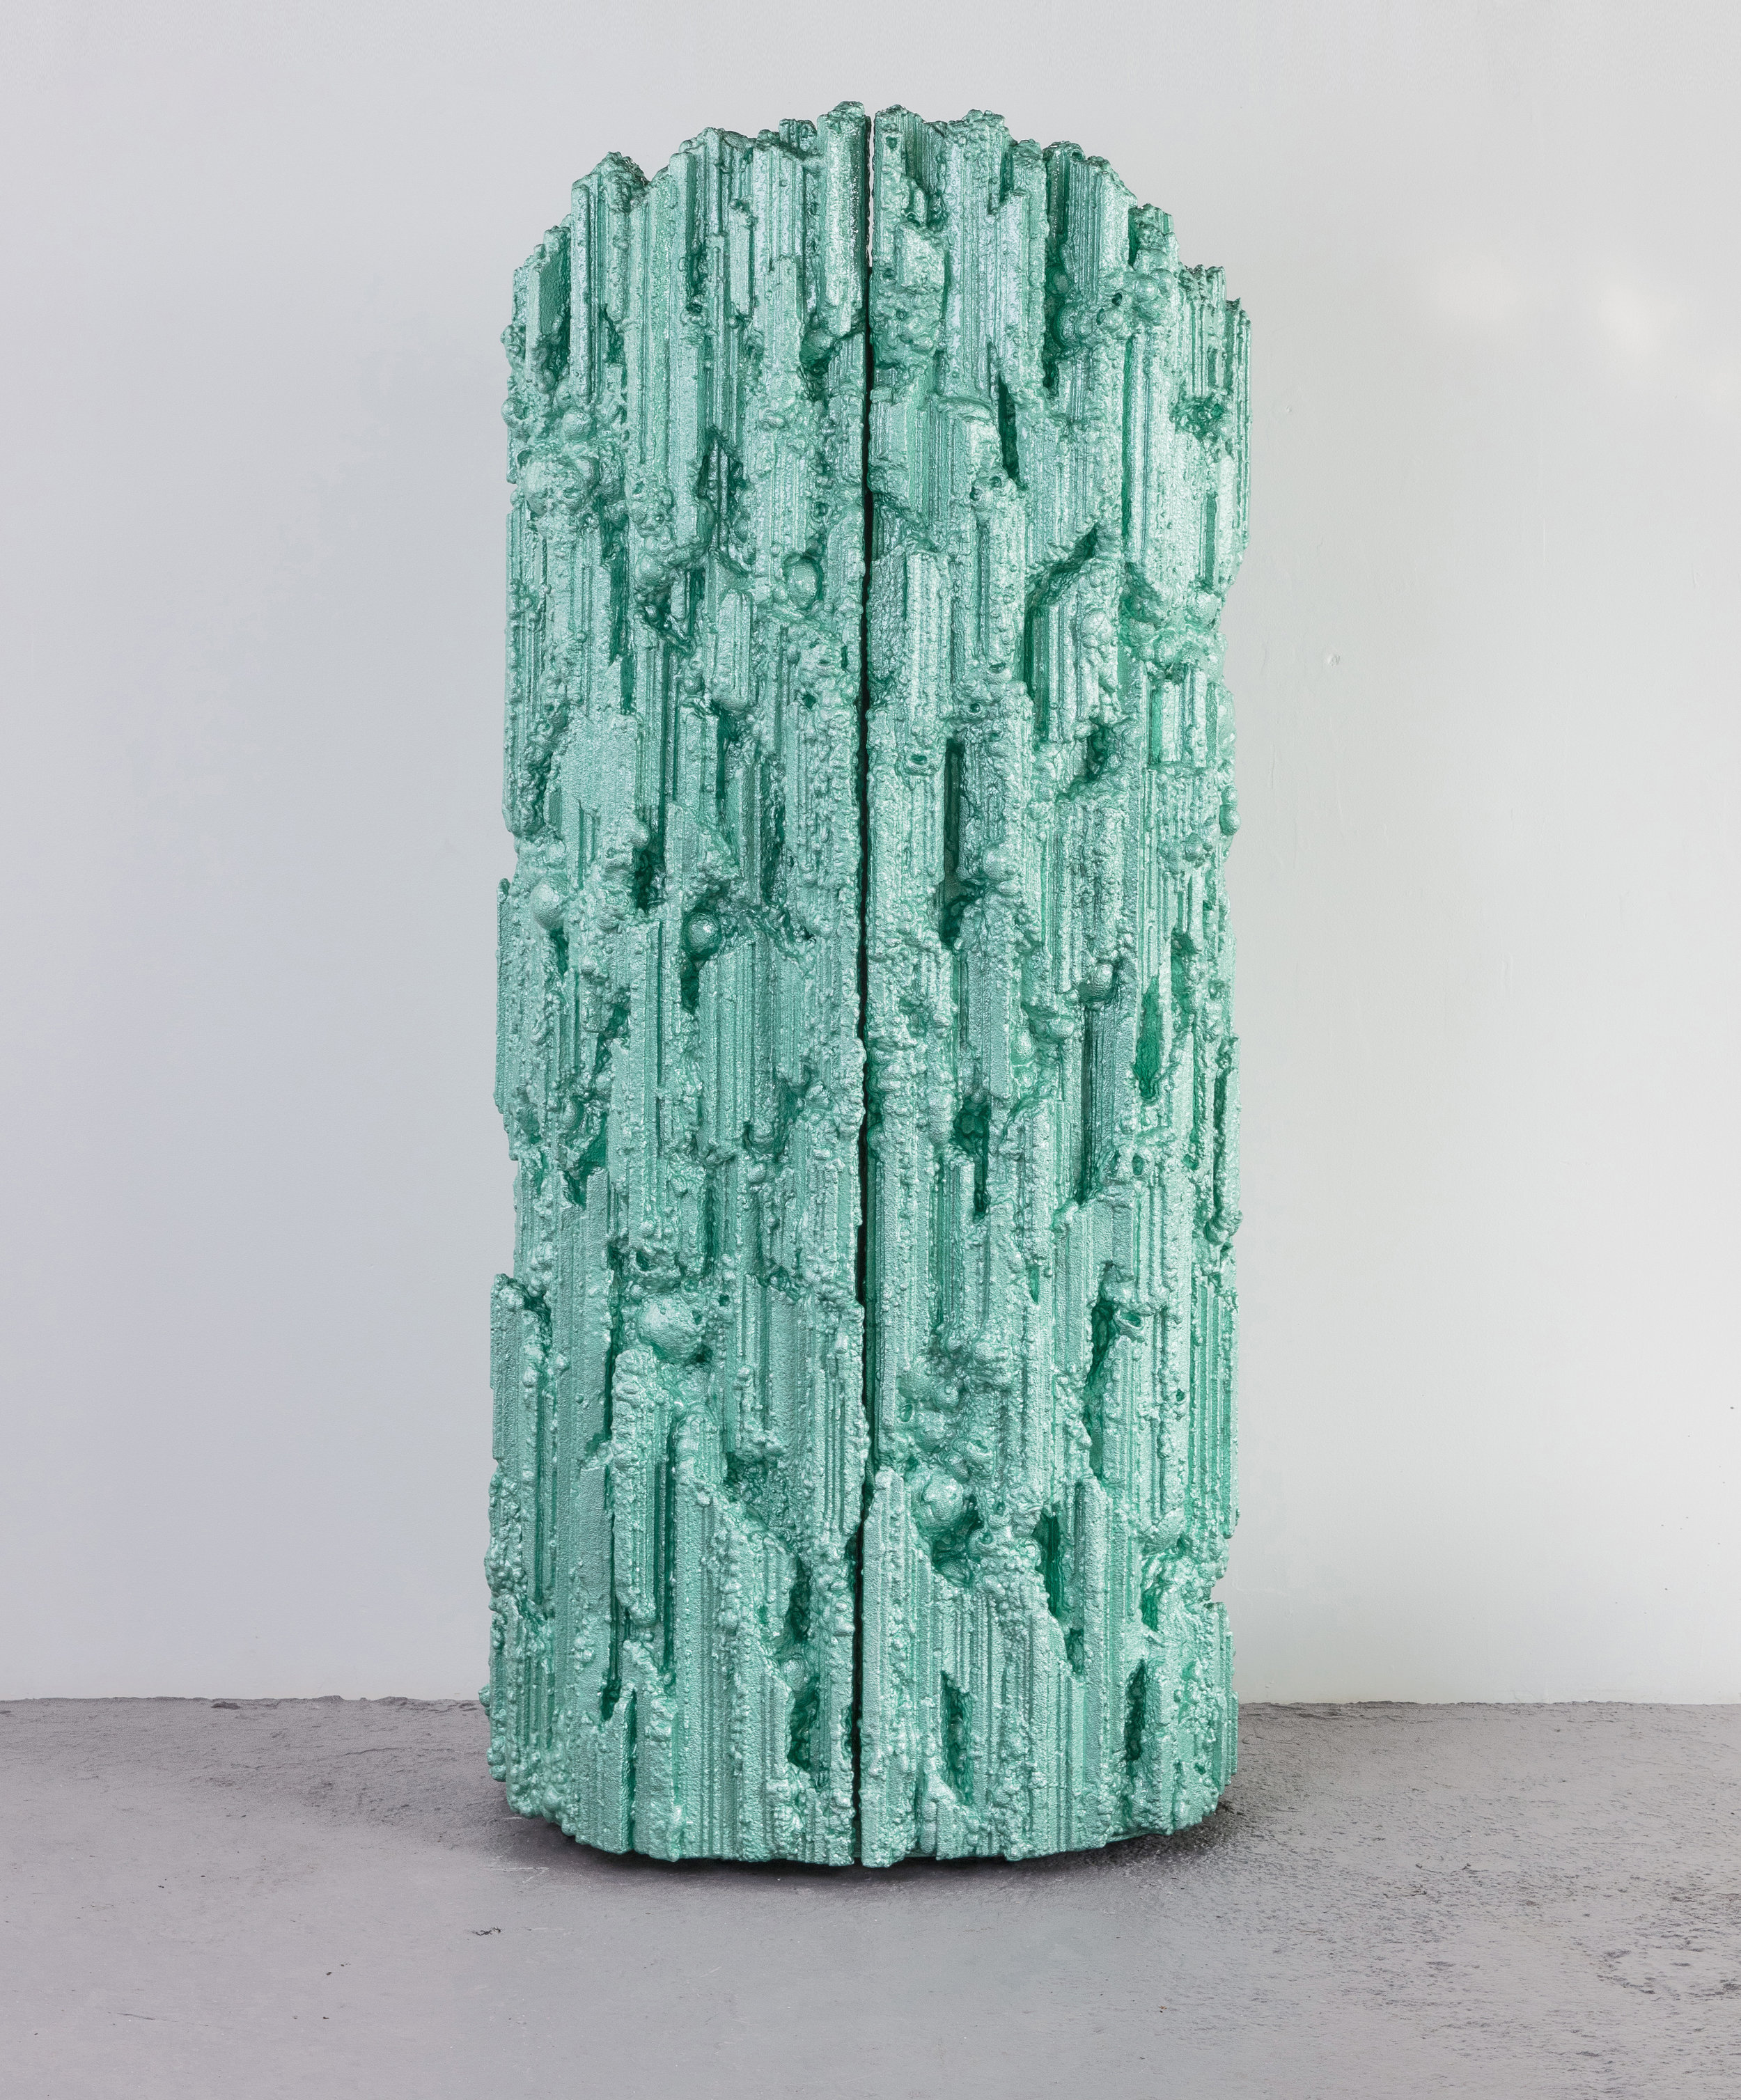 Crustacea , 2017 40 x 24 x 90 inches Resin, steel, wood, polystyrene, and suede